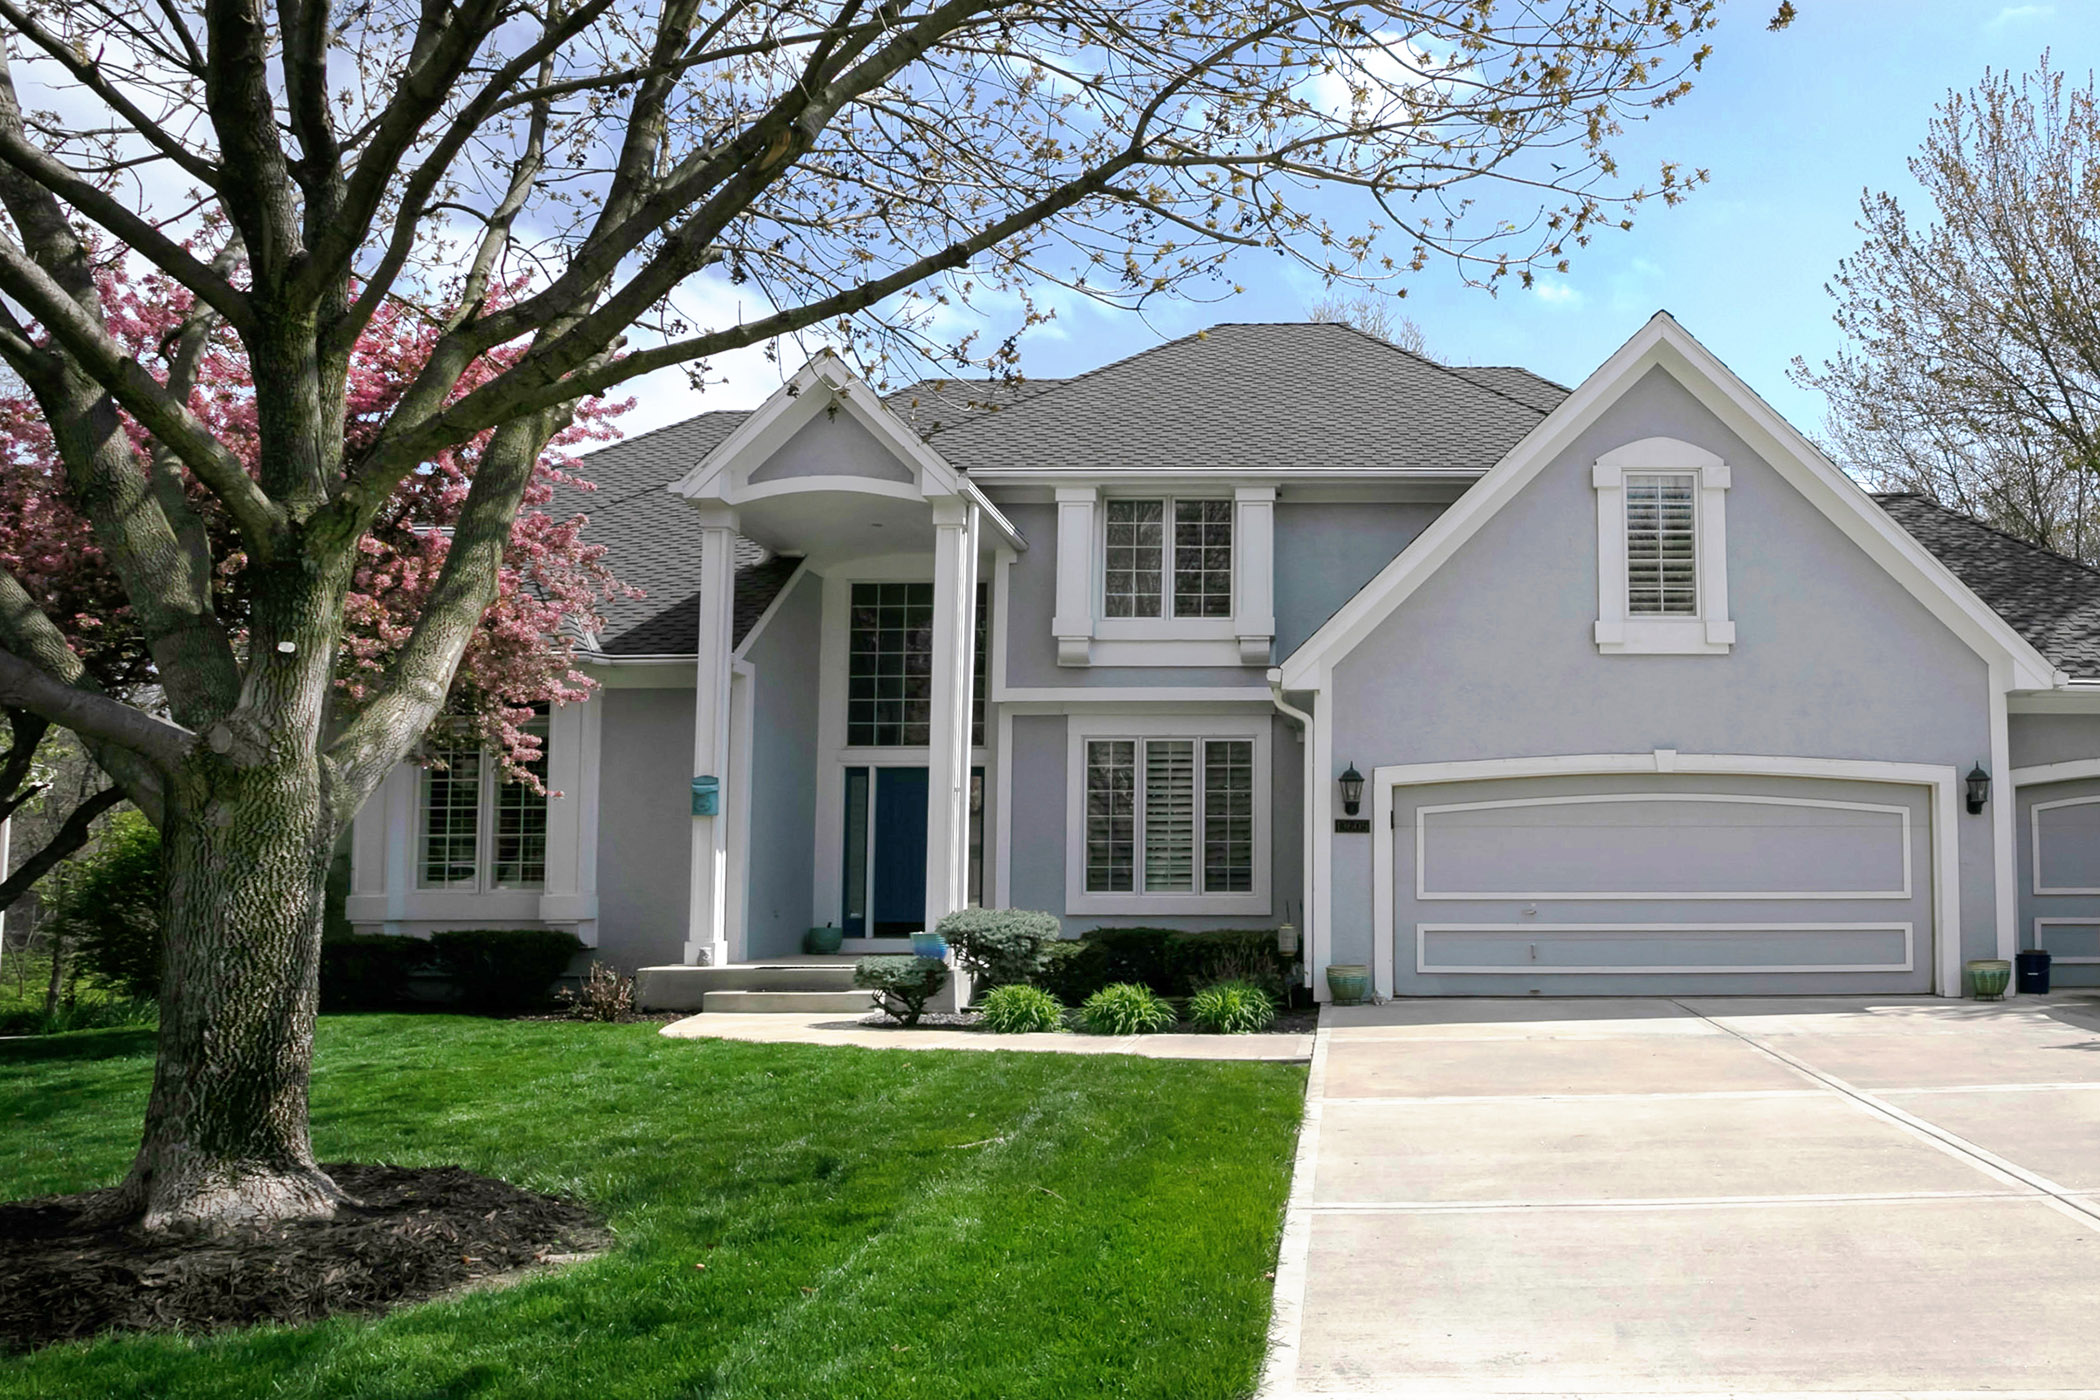 JUST LISTED ~ Gorgeous 5 Bedroom Custom Built Don Julian Home in Woodland Place